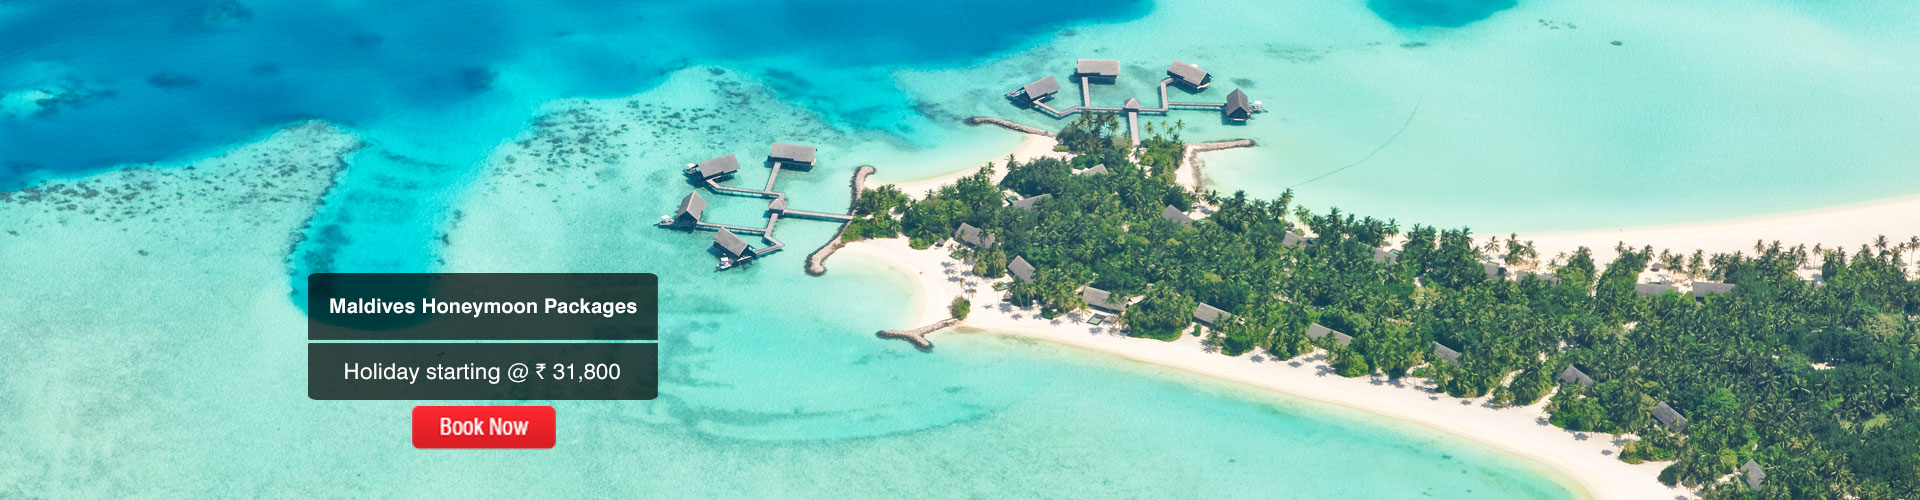 Maldives Honeymoon Trip